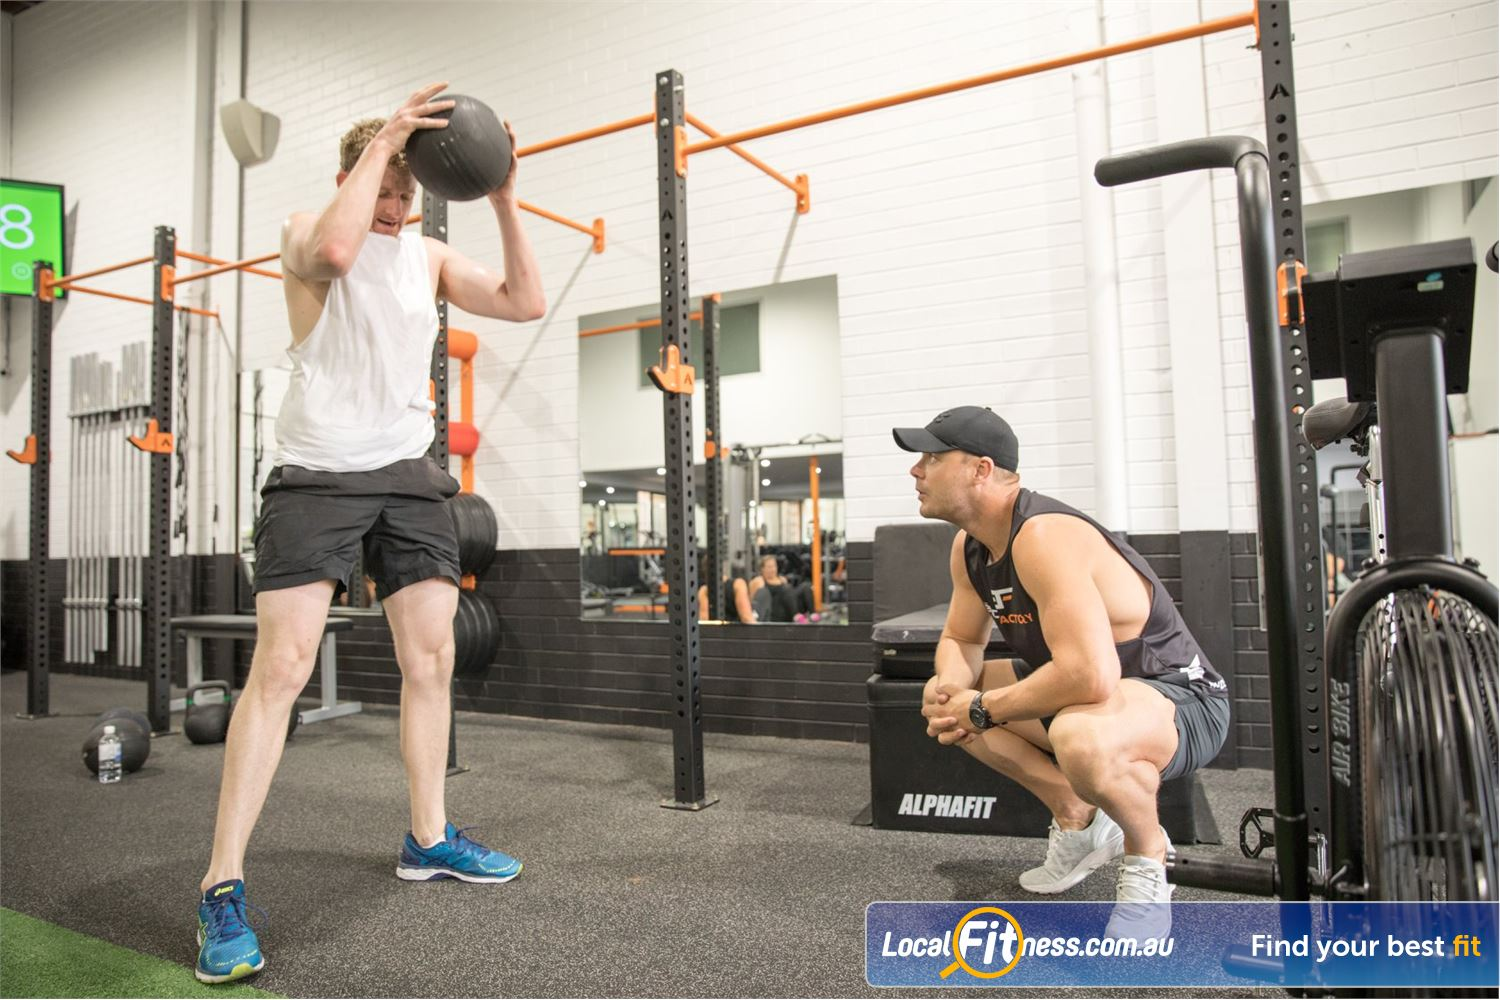 The Body Factory Caringbah Your Caringbah personal training is your dedicated coach.